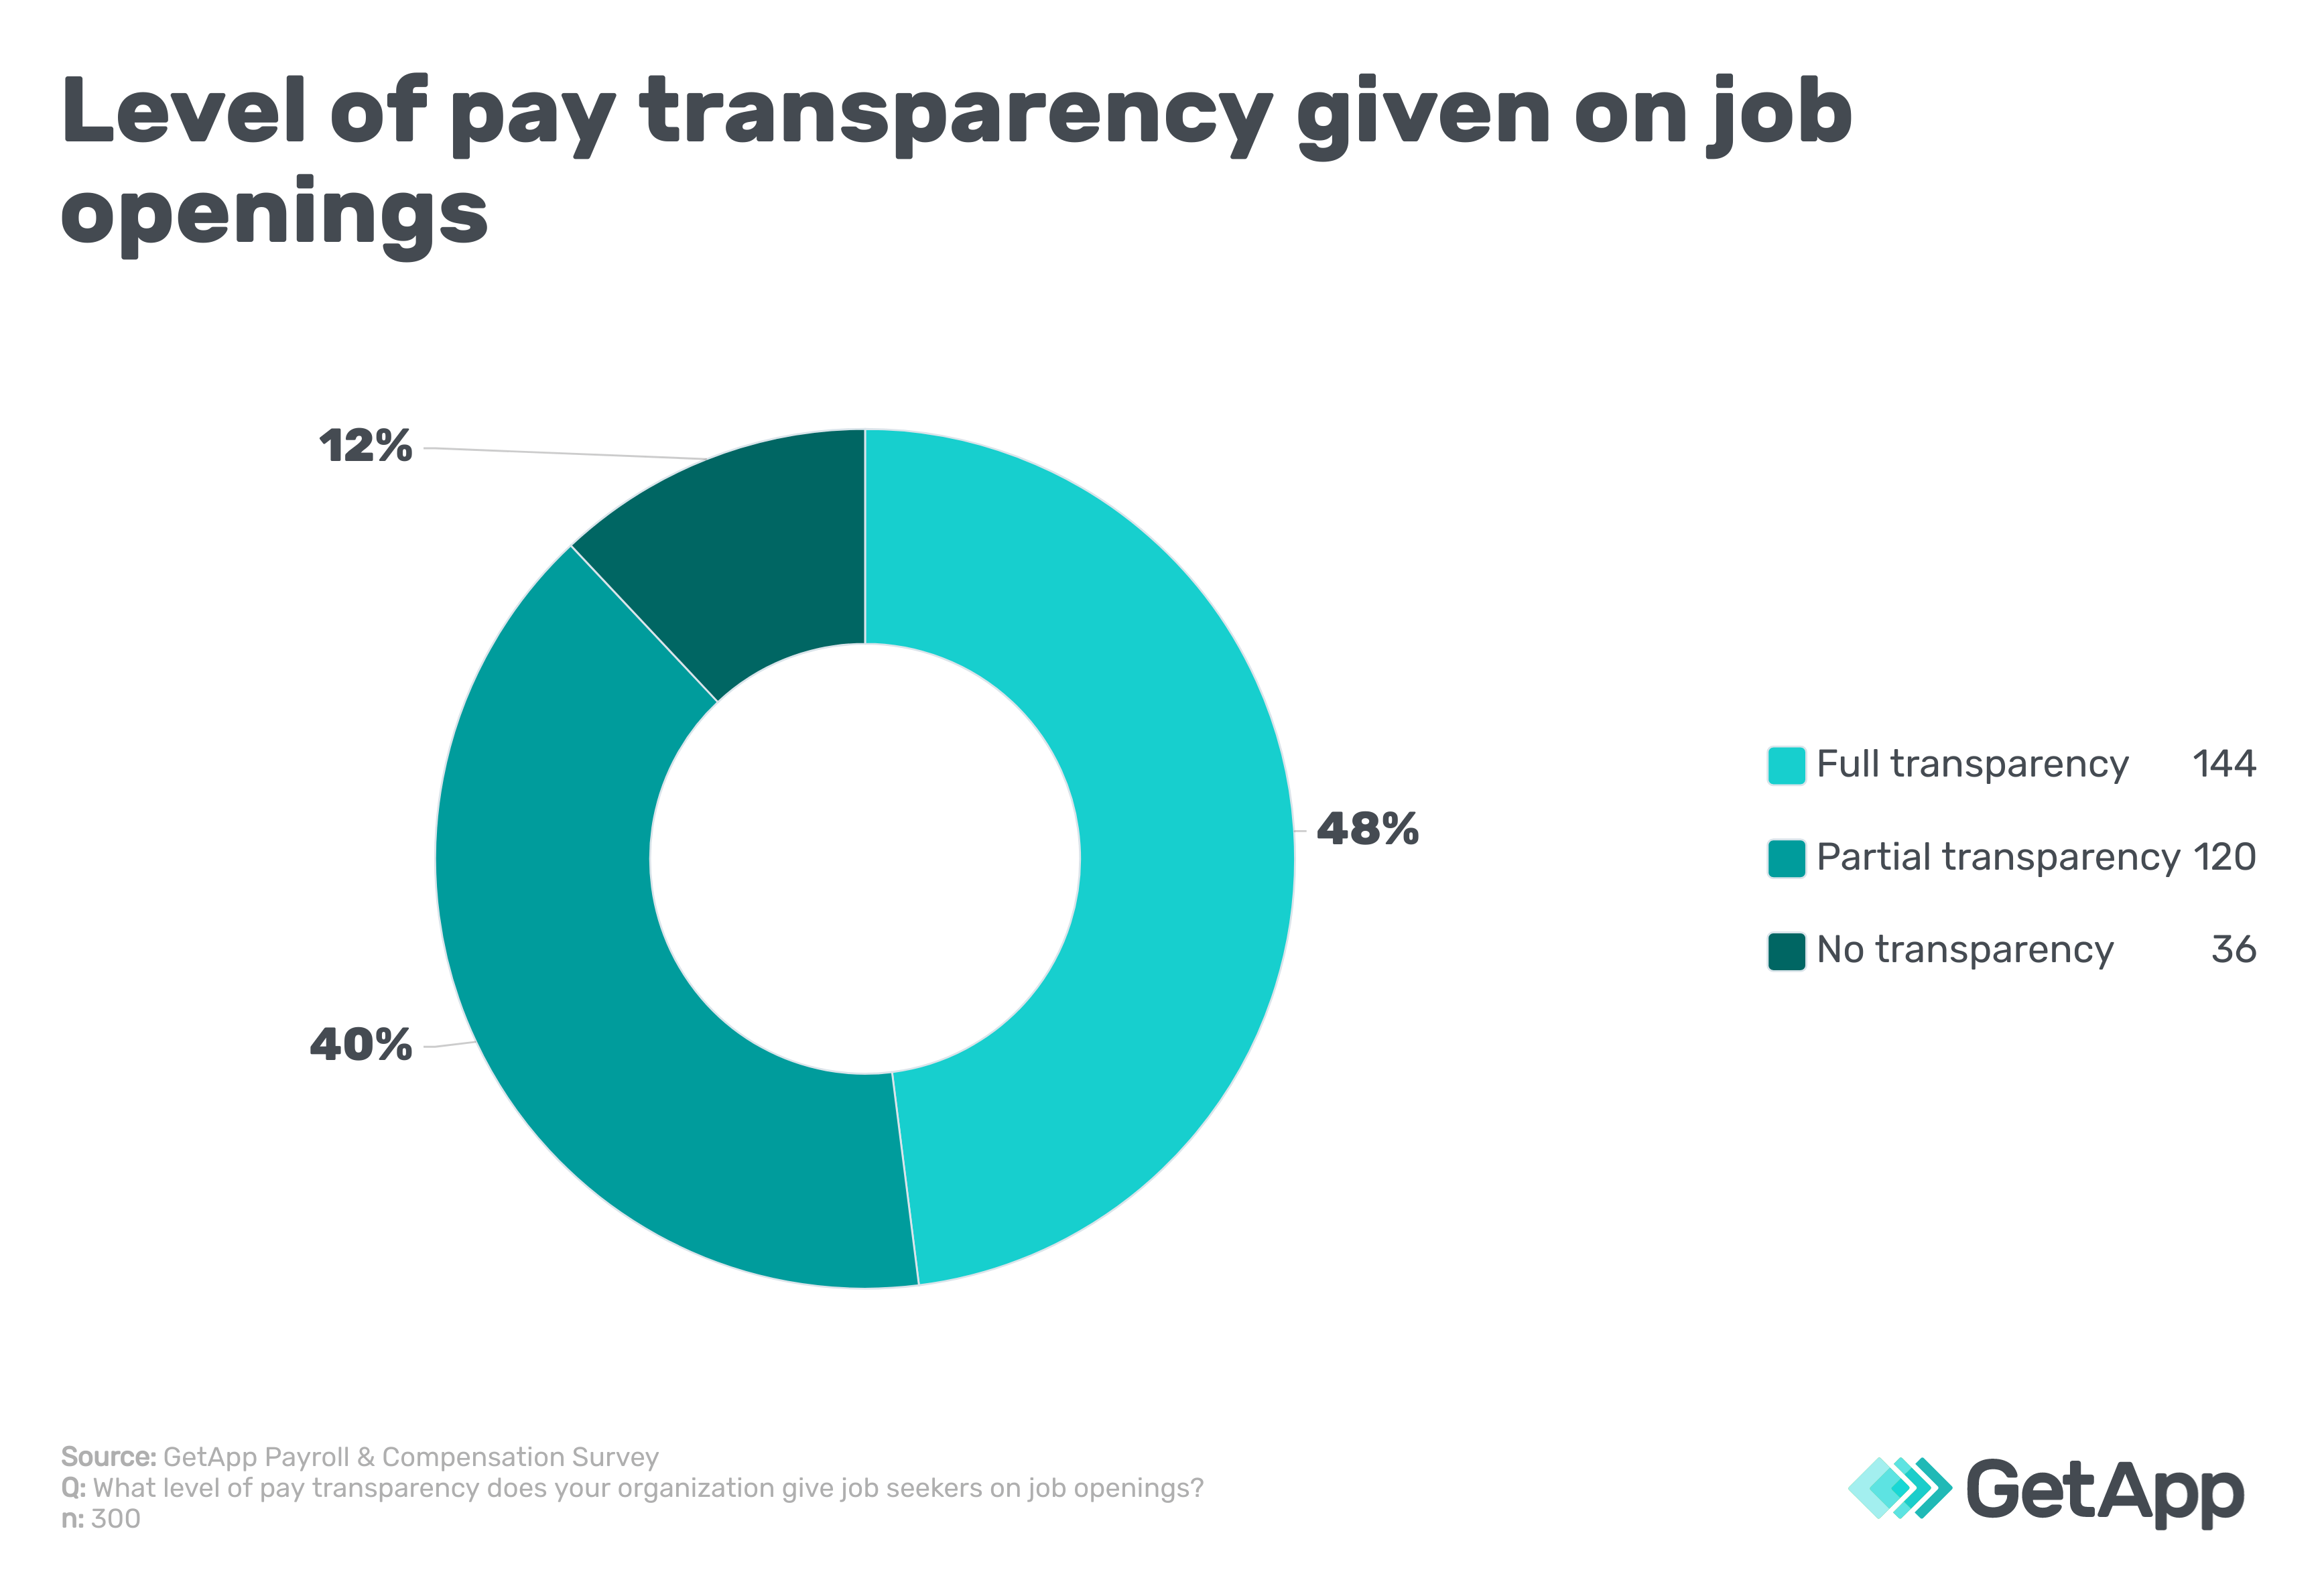 Level of pay transparency given on job openings